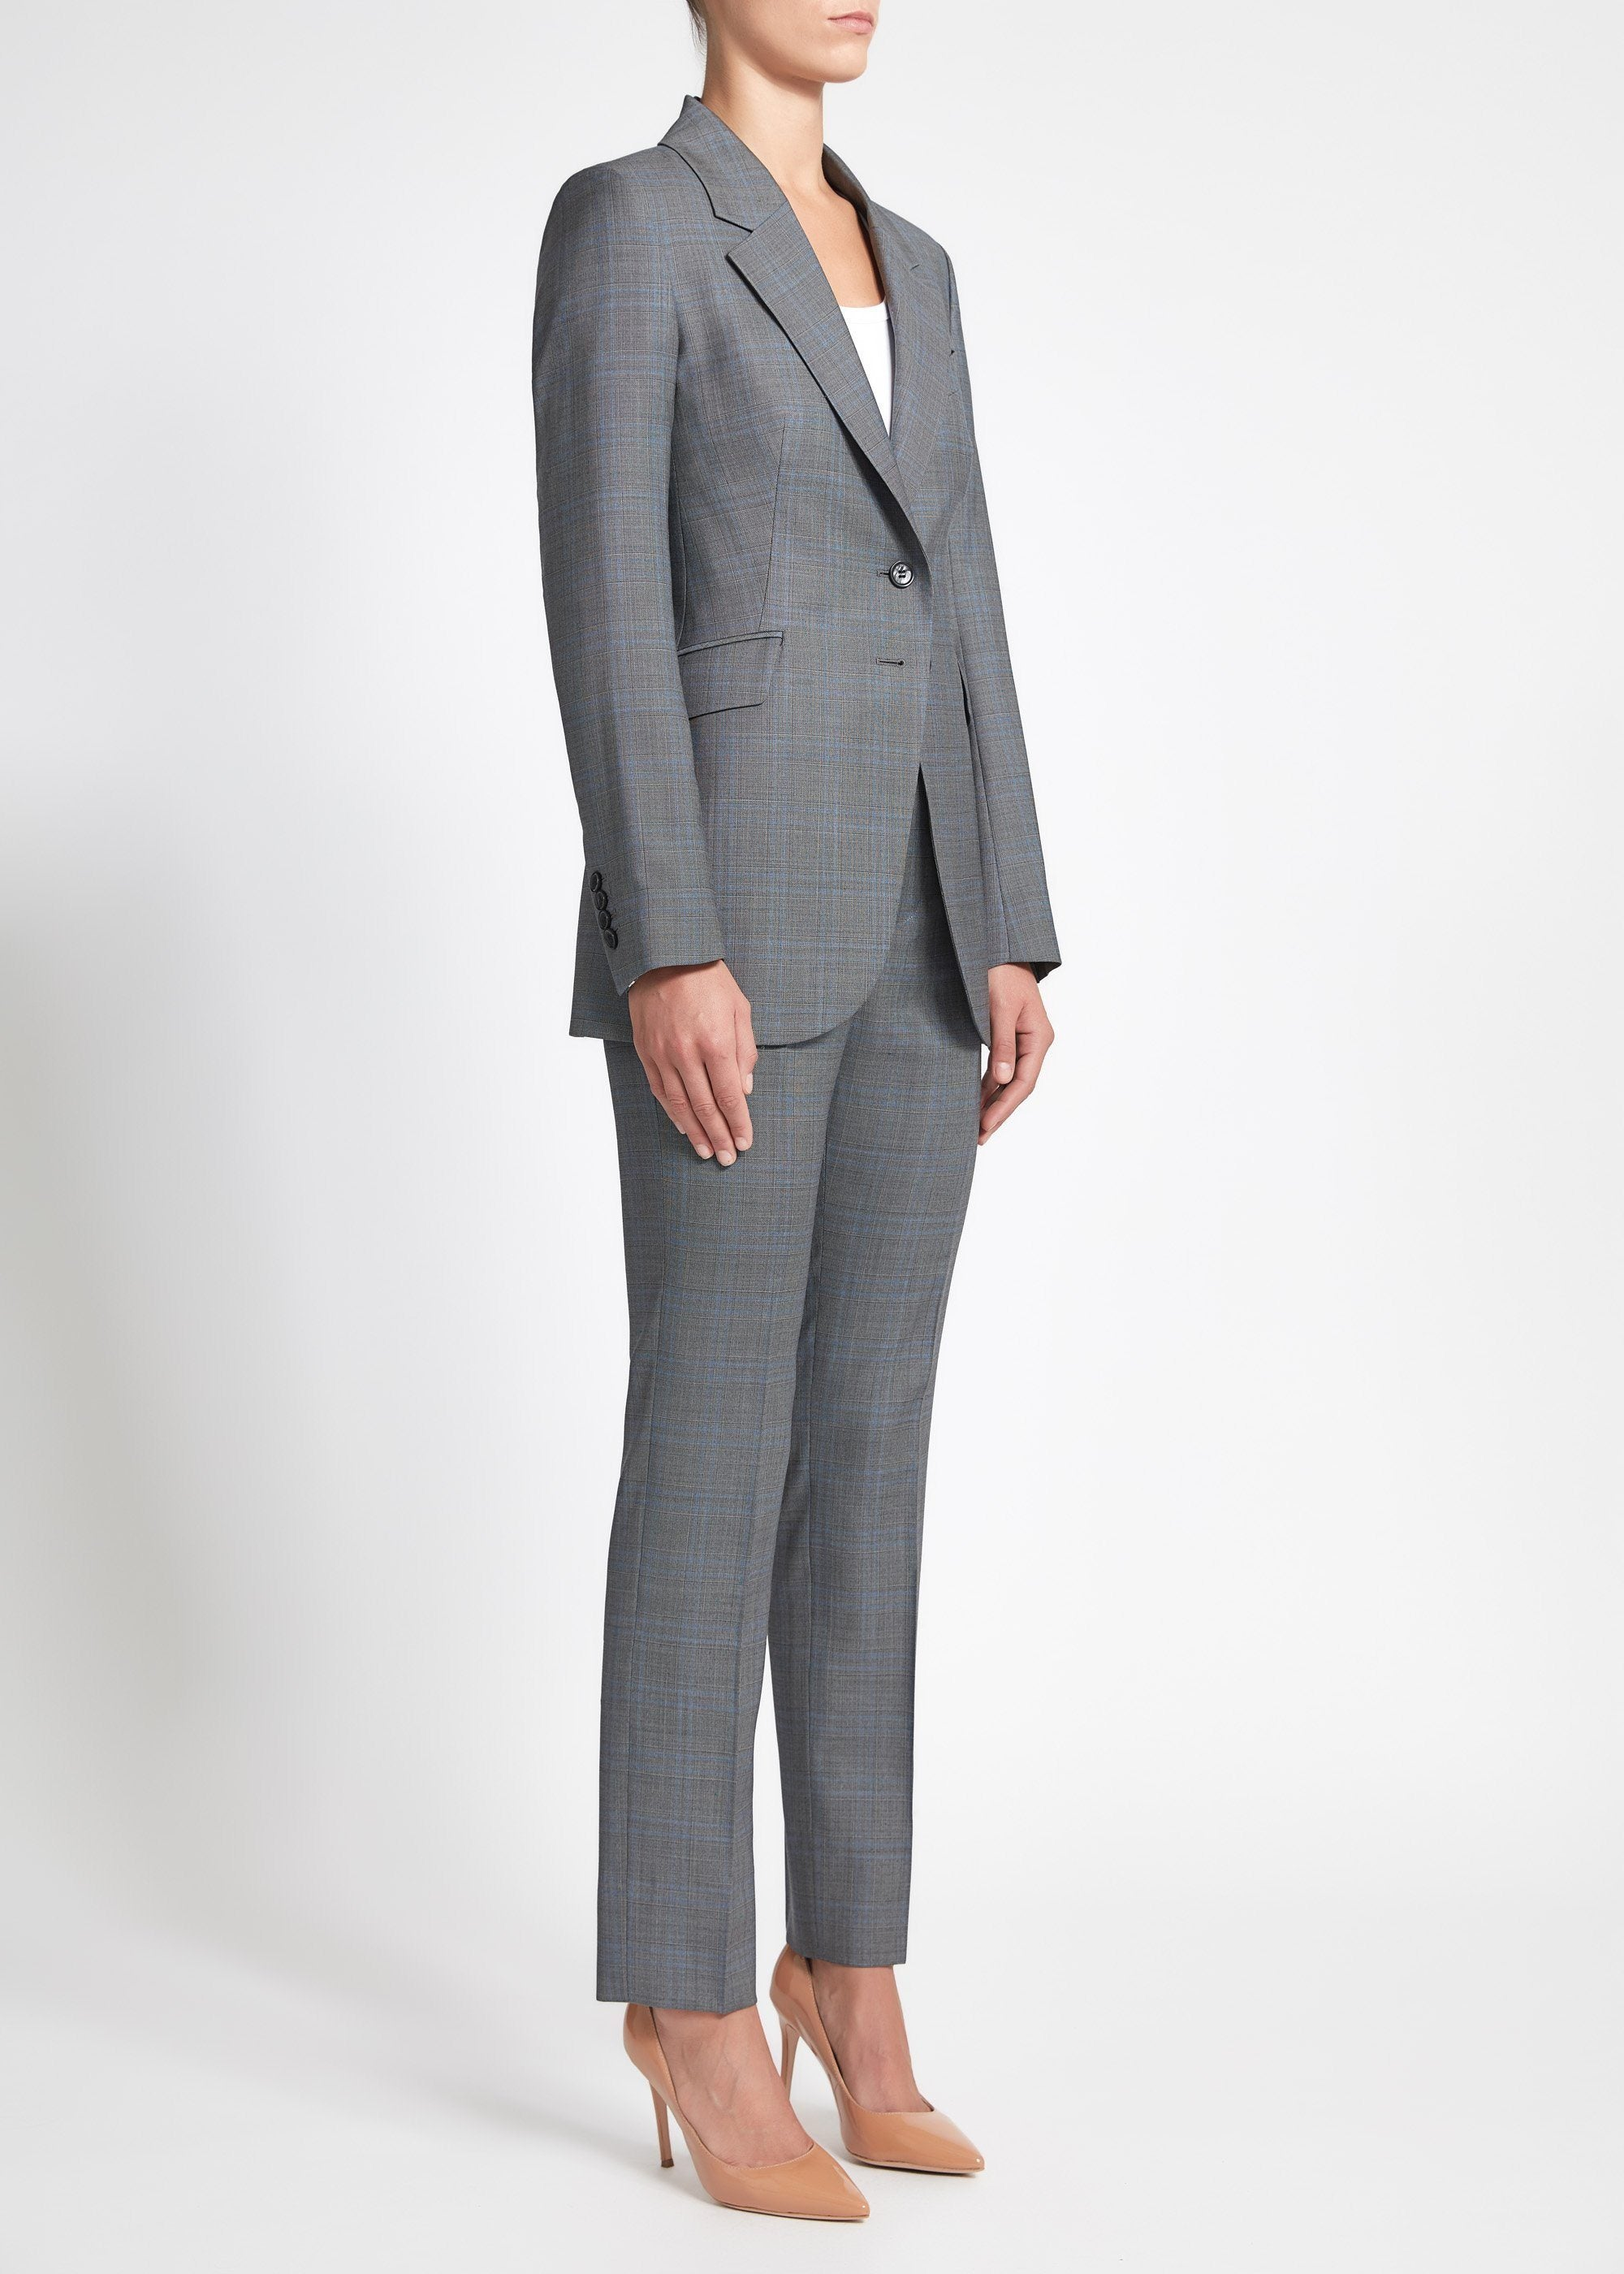 Lucia Suit - Grey Blue Check